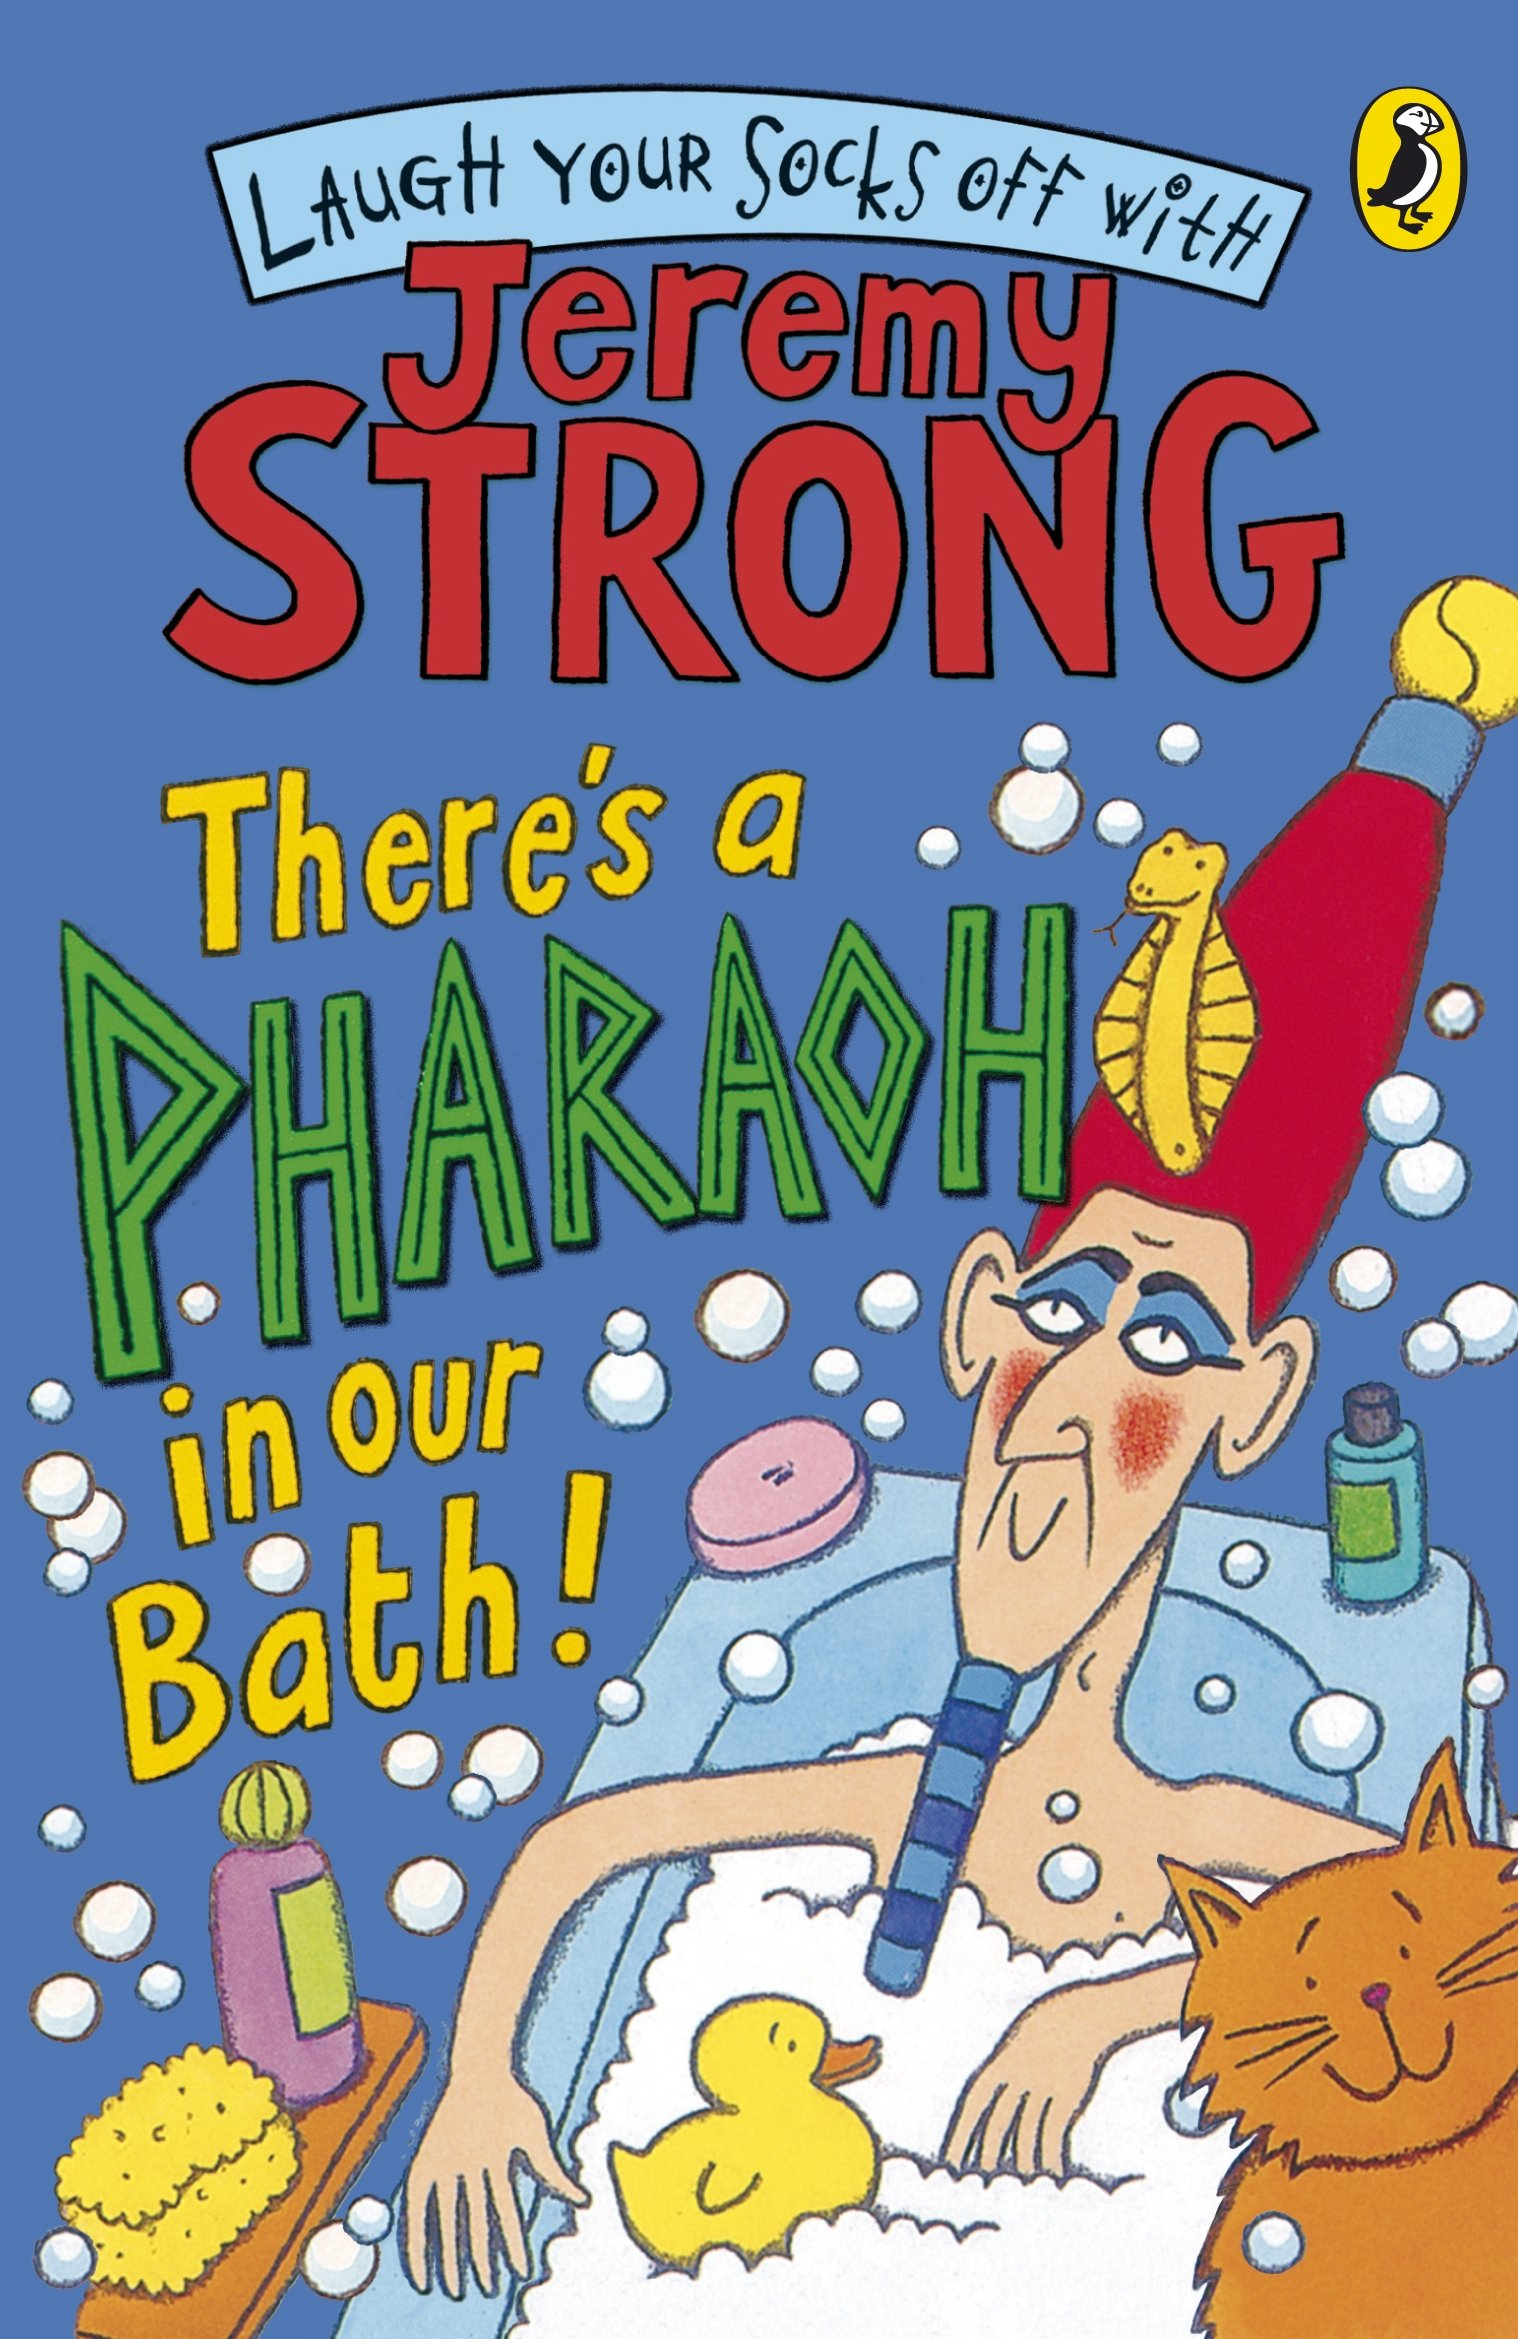 There's A Pharaoh In Our Bath! (Laugh Your Socks Off)